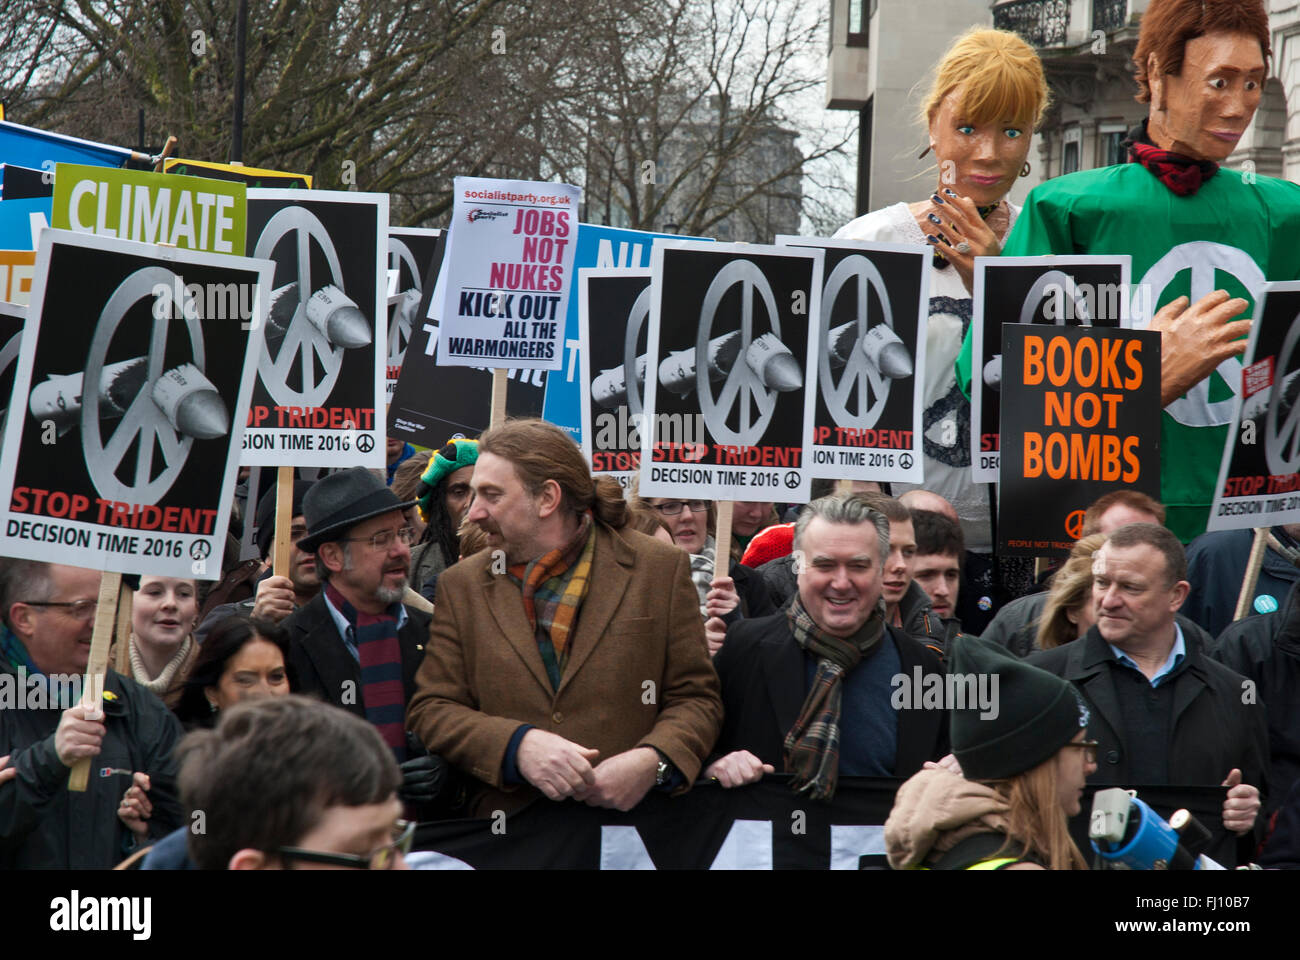 Protesters against Trident; they carry banners 'Jobs not nukes', 'Books not Bombs'. Scottish Nationalist - Stock Image